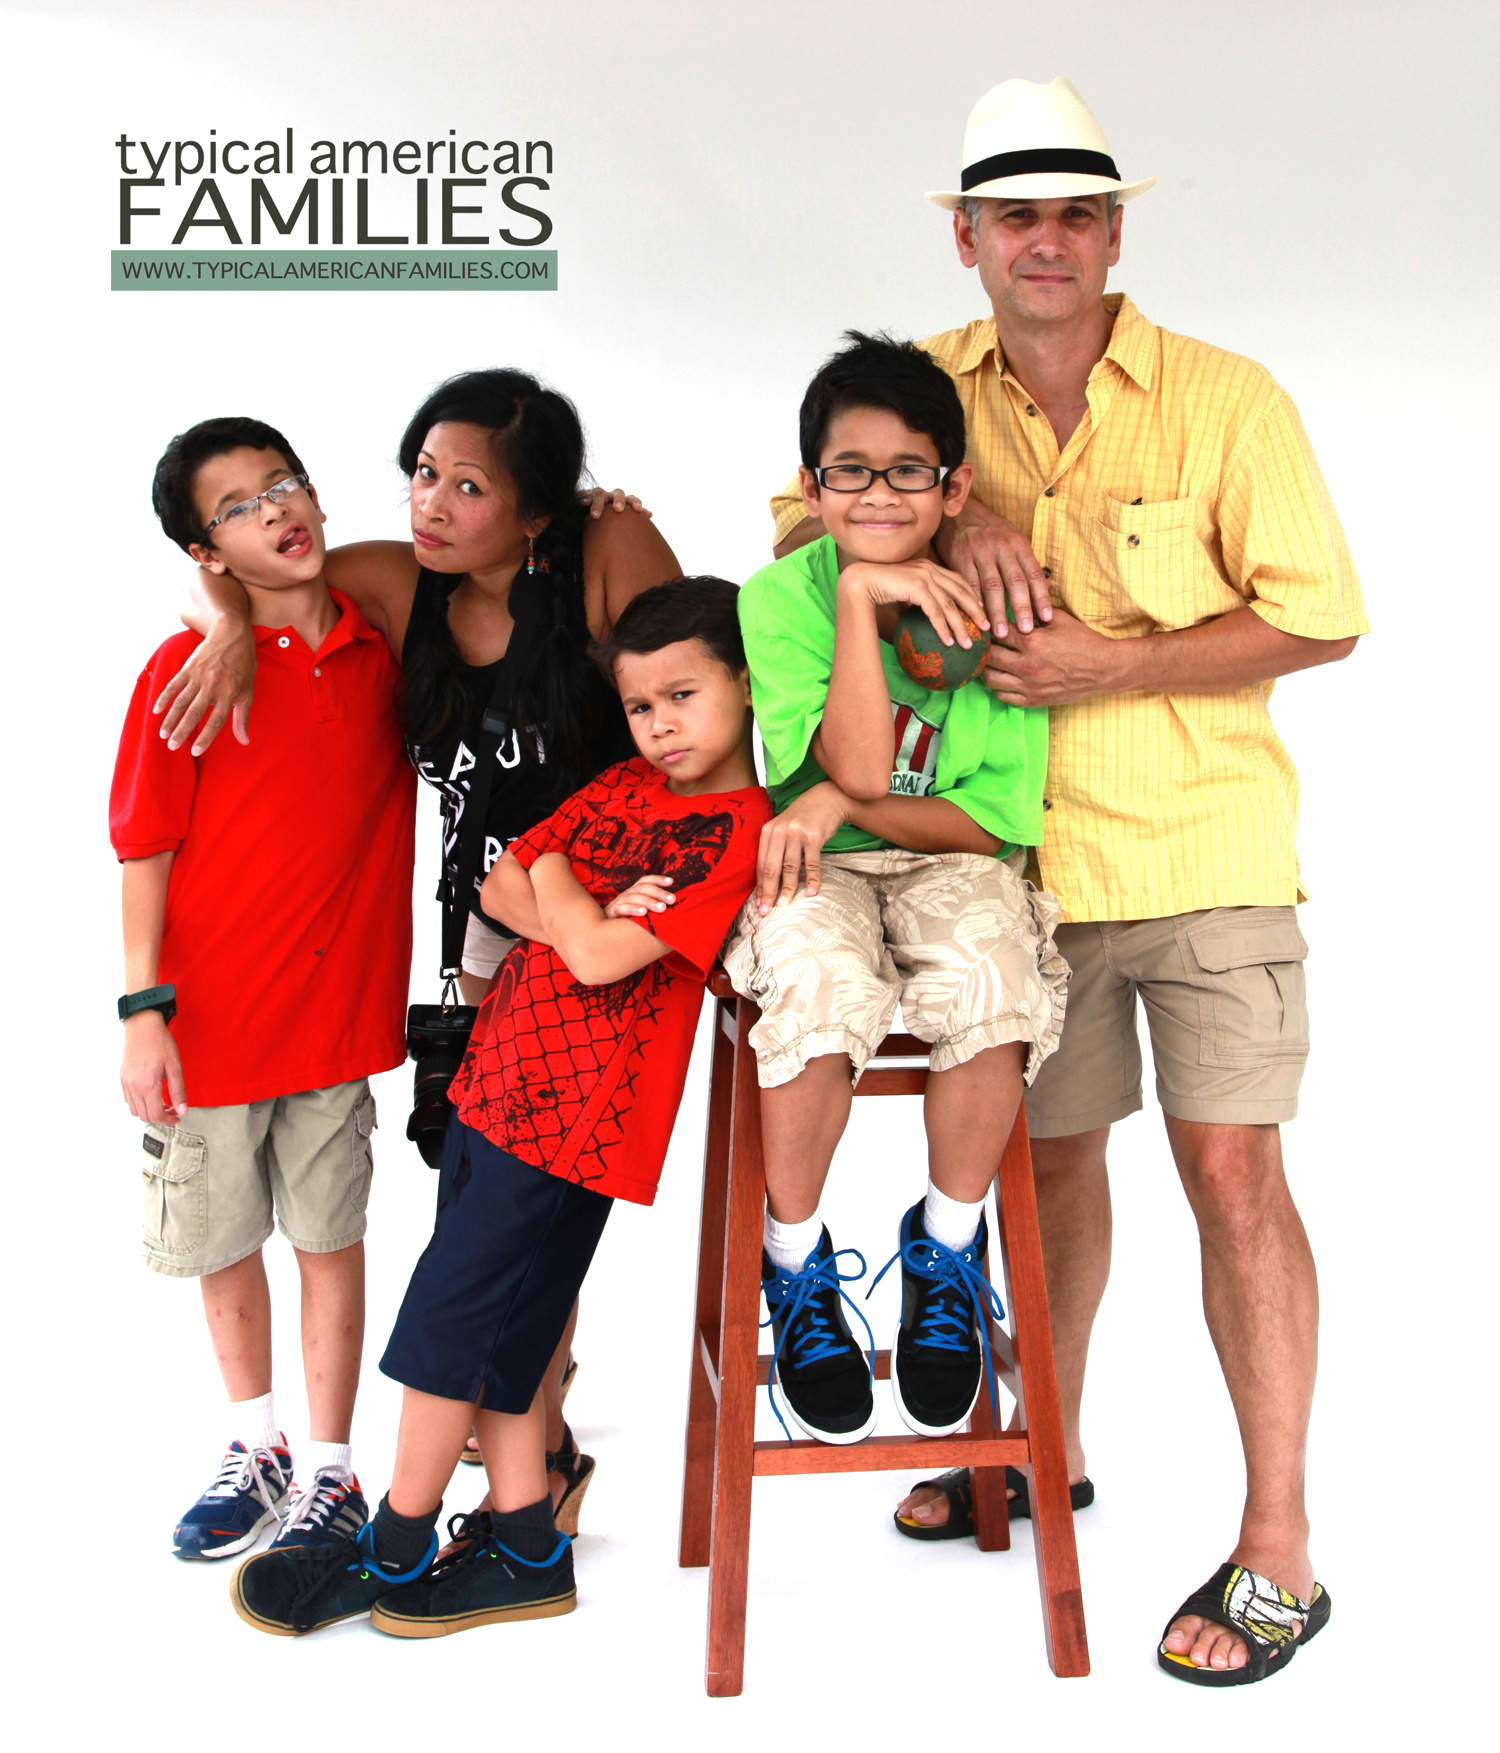 Photo of Oyzon-Mast family by Jeremiah Ojo at the Inaugural Open Photo Shoot of Typical American Families